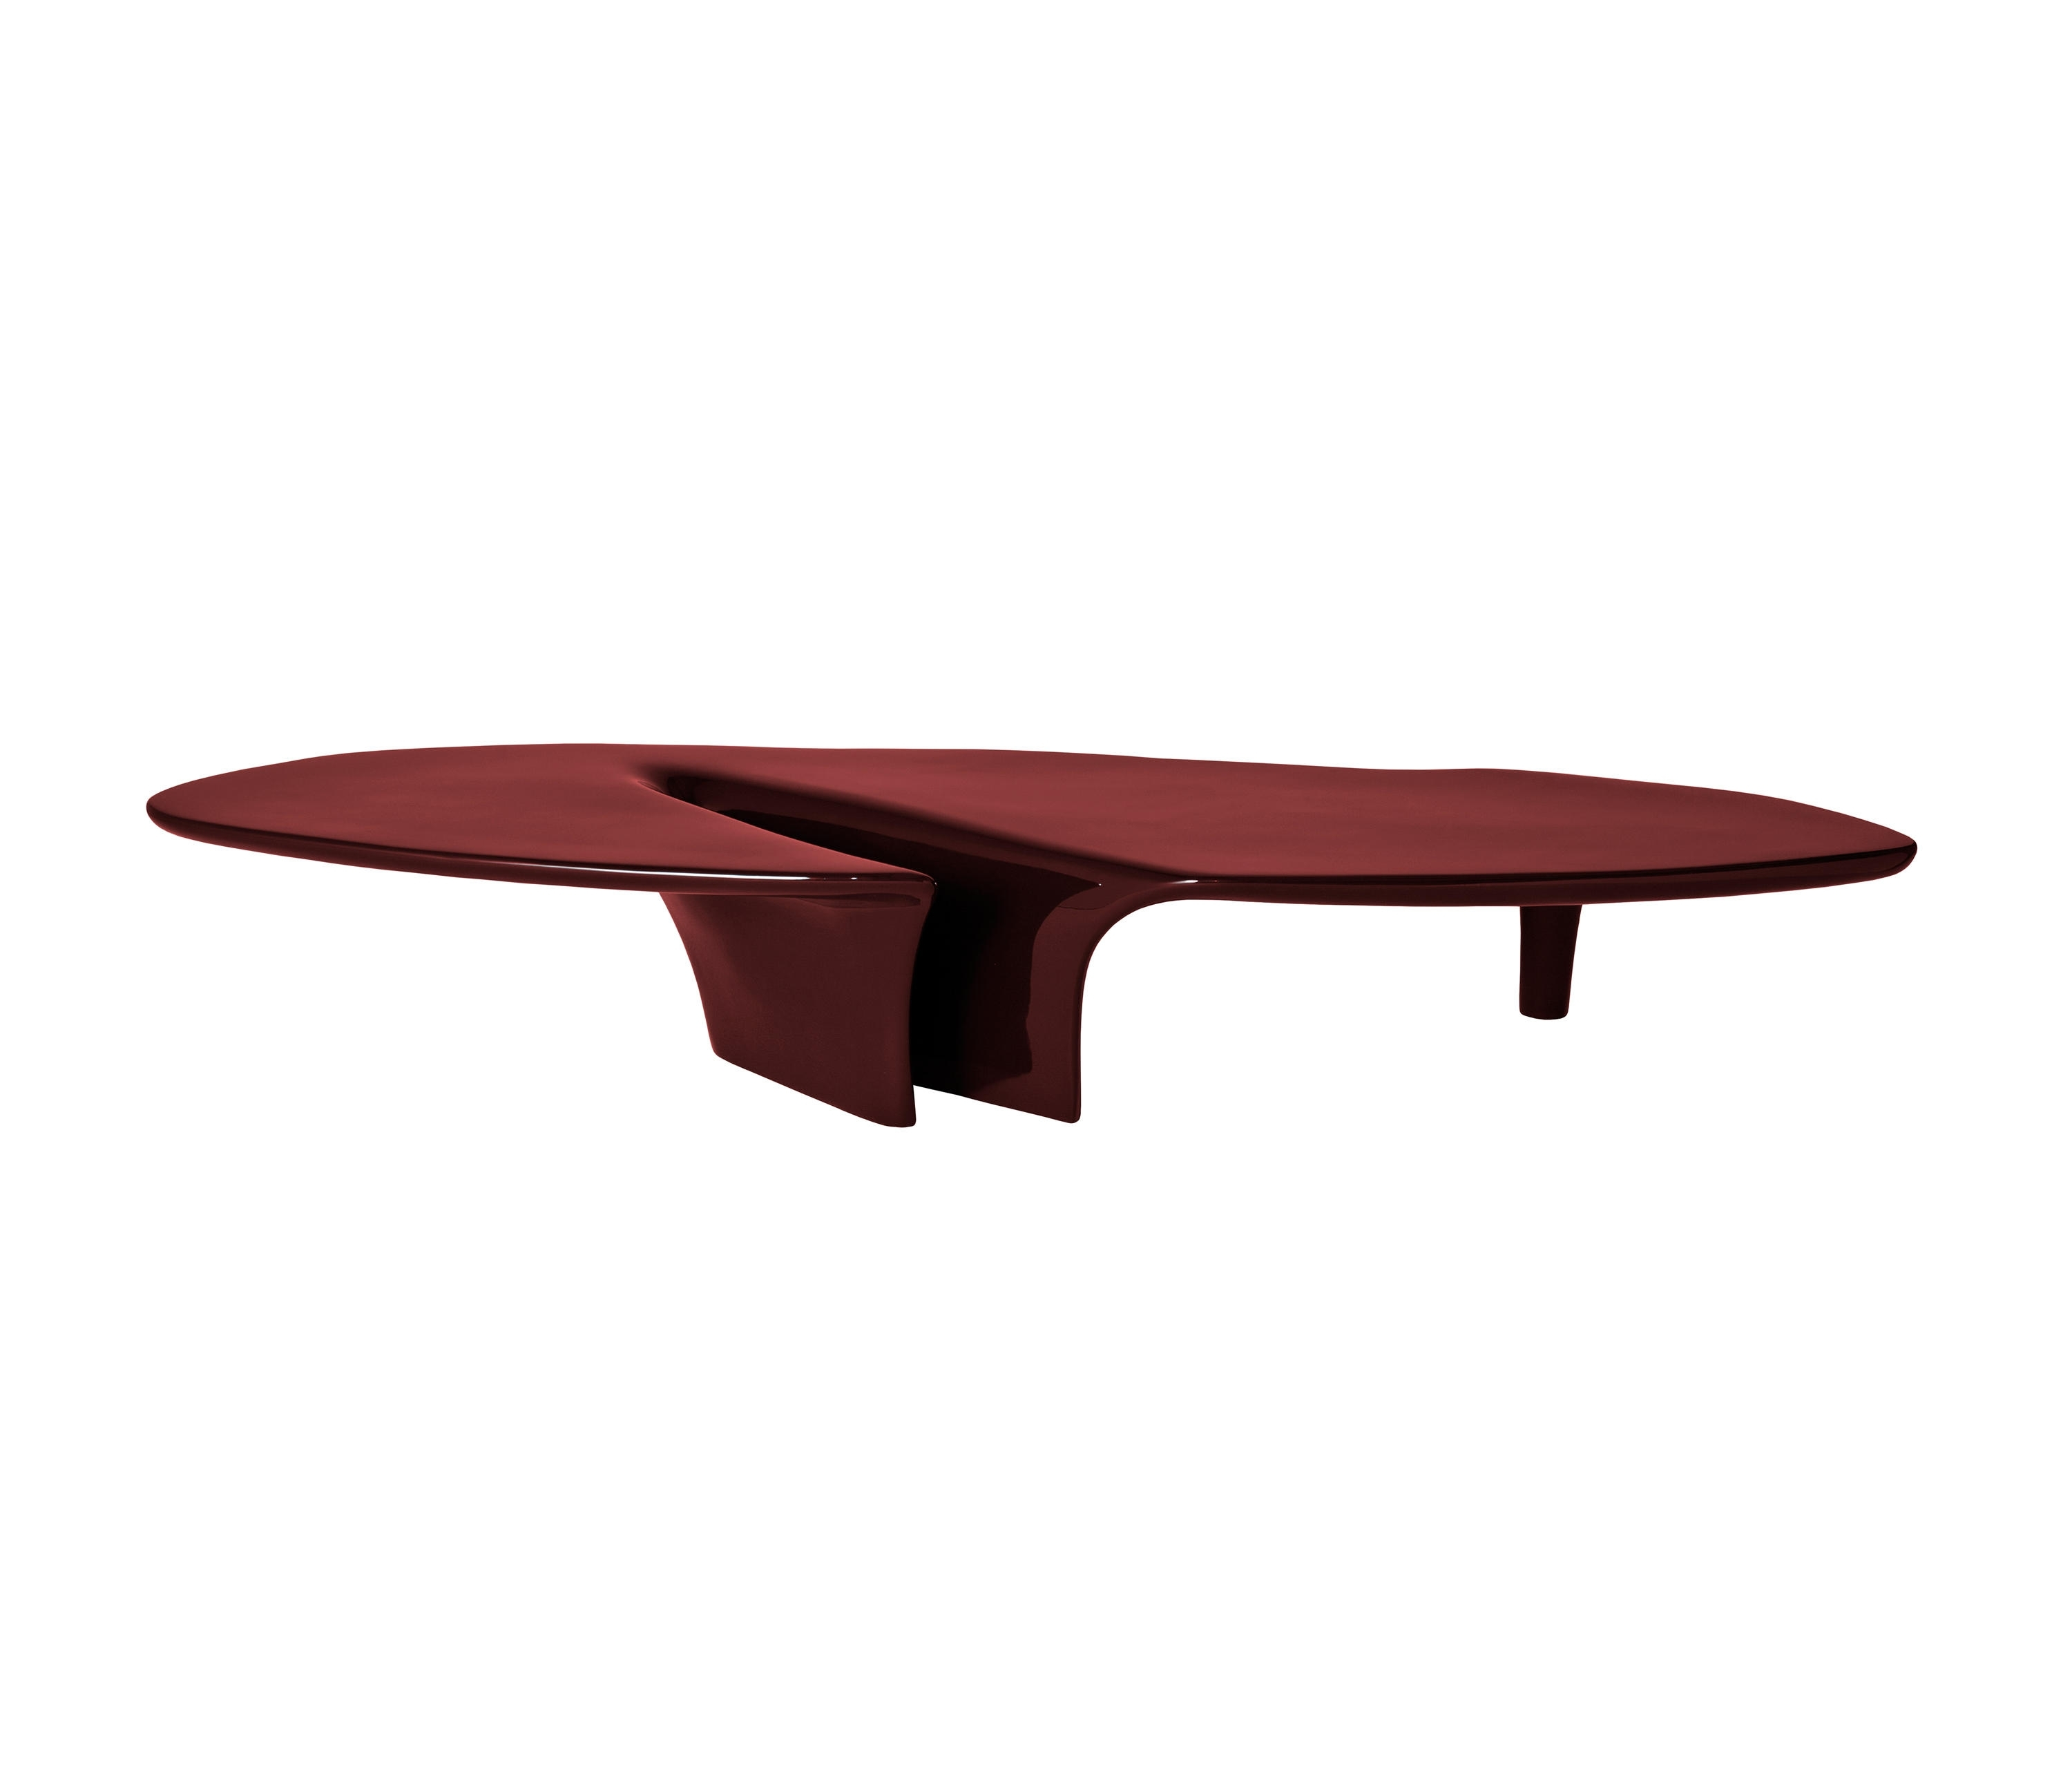 Waterfall Coffee Table - Coffee Tables From Driade | Architonic for Waterfall Coffee Tables (Image 21 of 30)